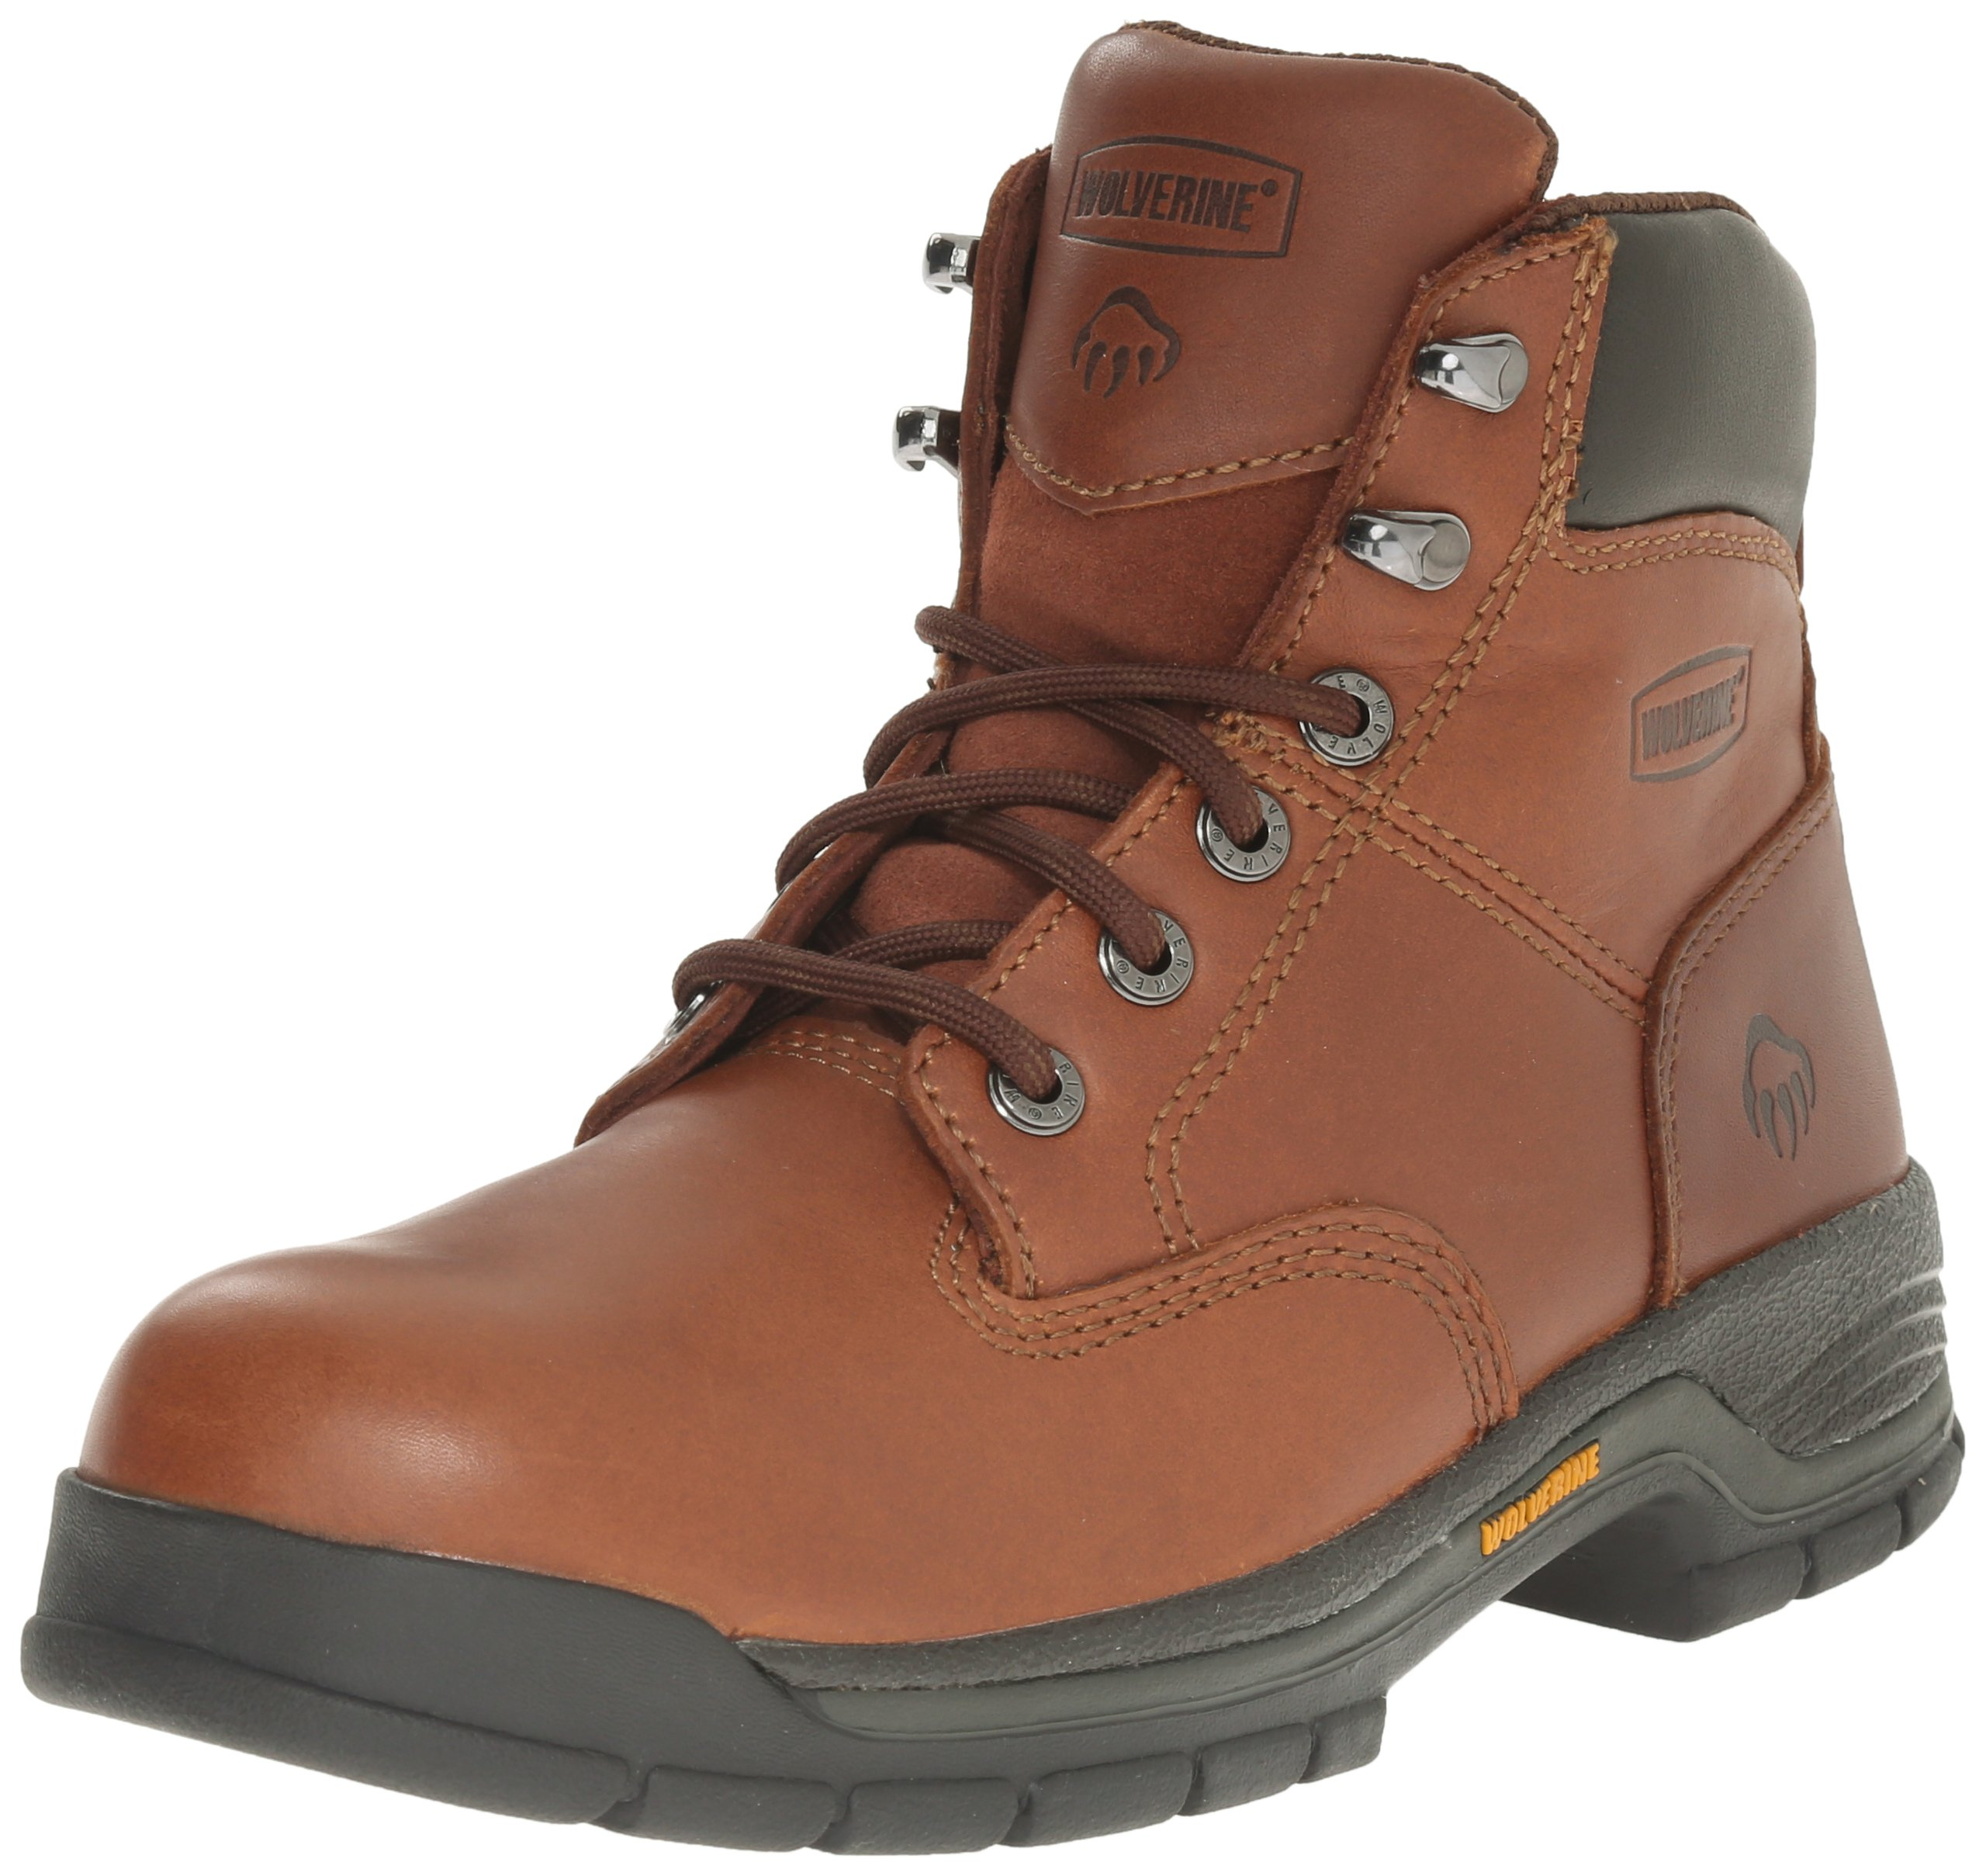 Wolverine Women's Harrison WMS 6'' LACE UP-W, Brown, 10 M US by Wolverine (Image #1)